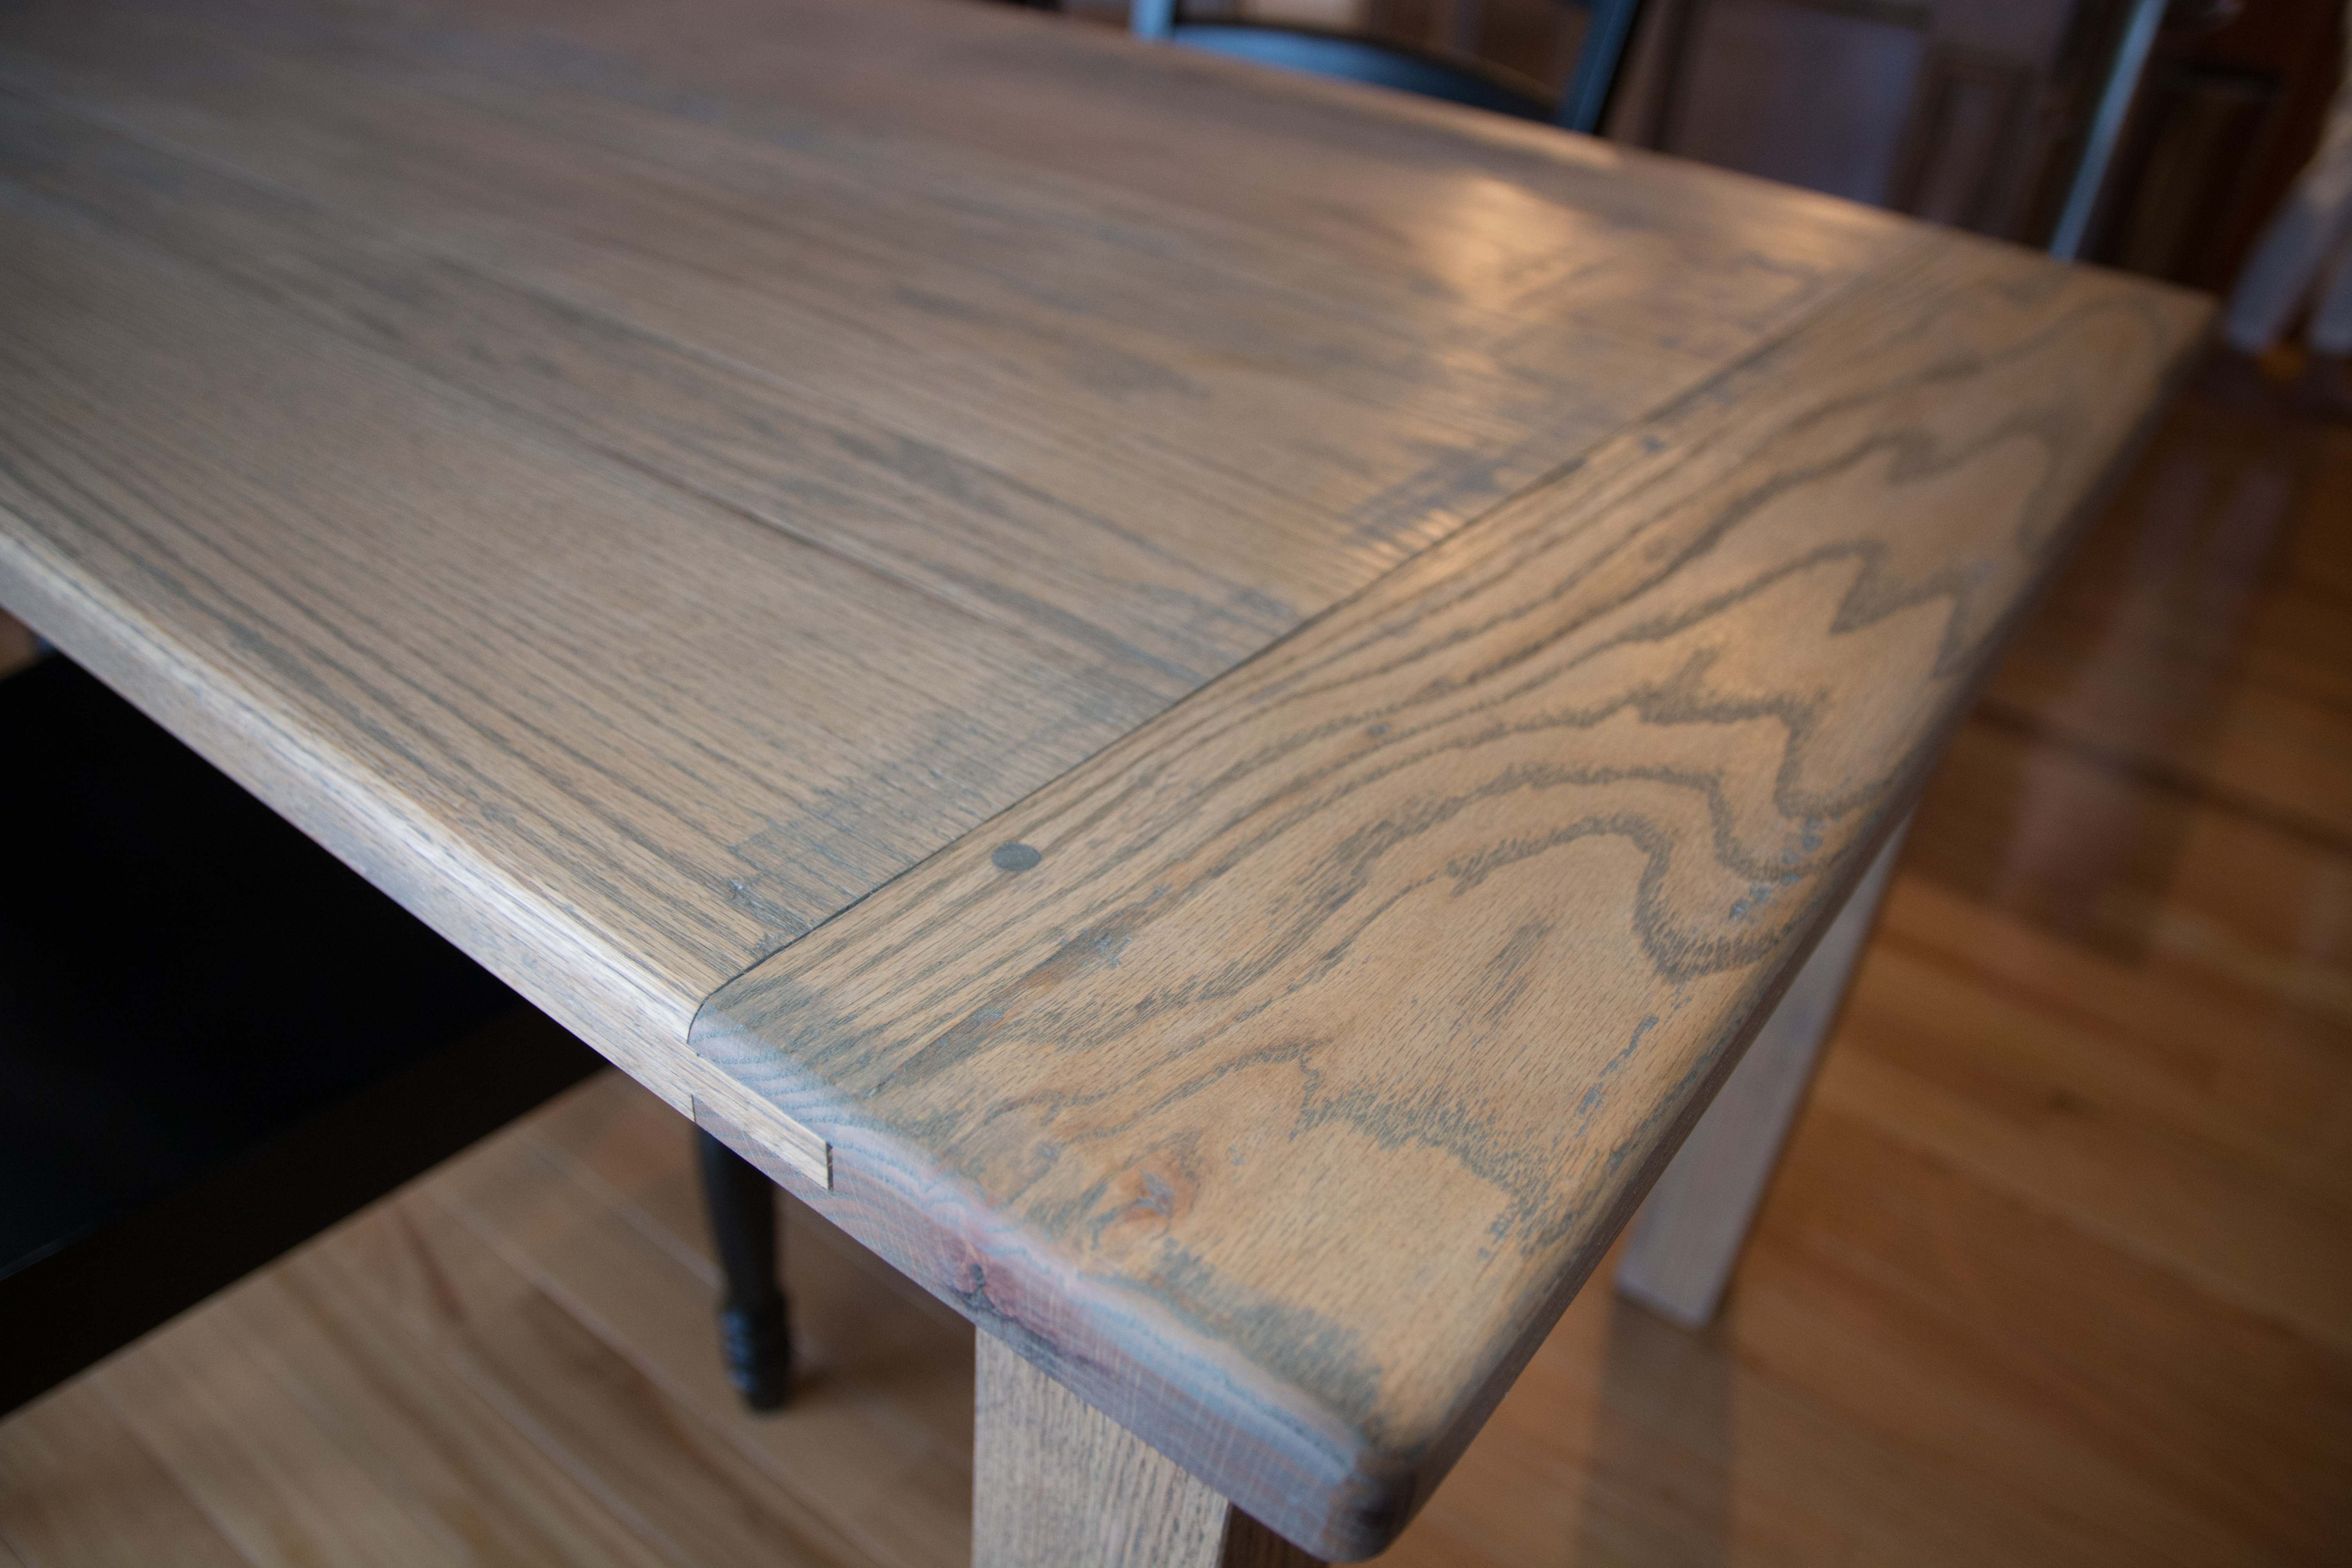 The Weathered Oak Harvest Table